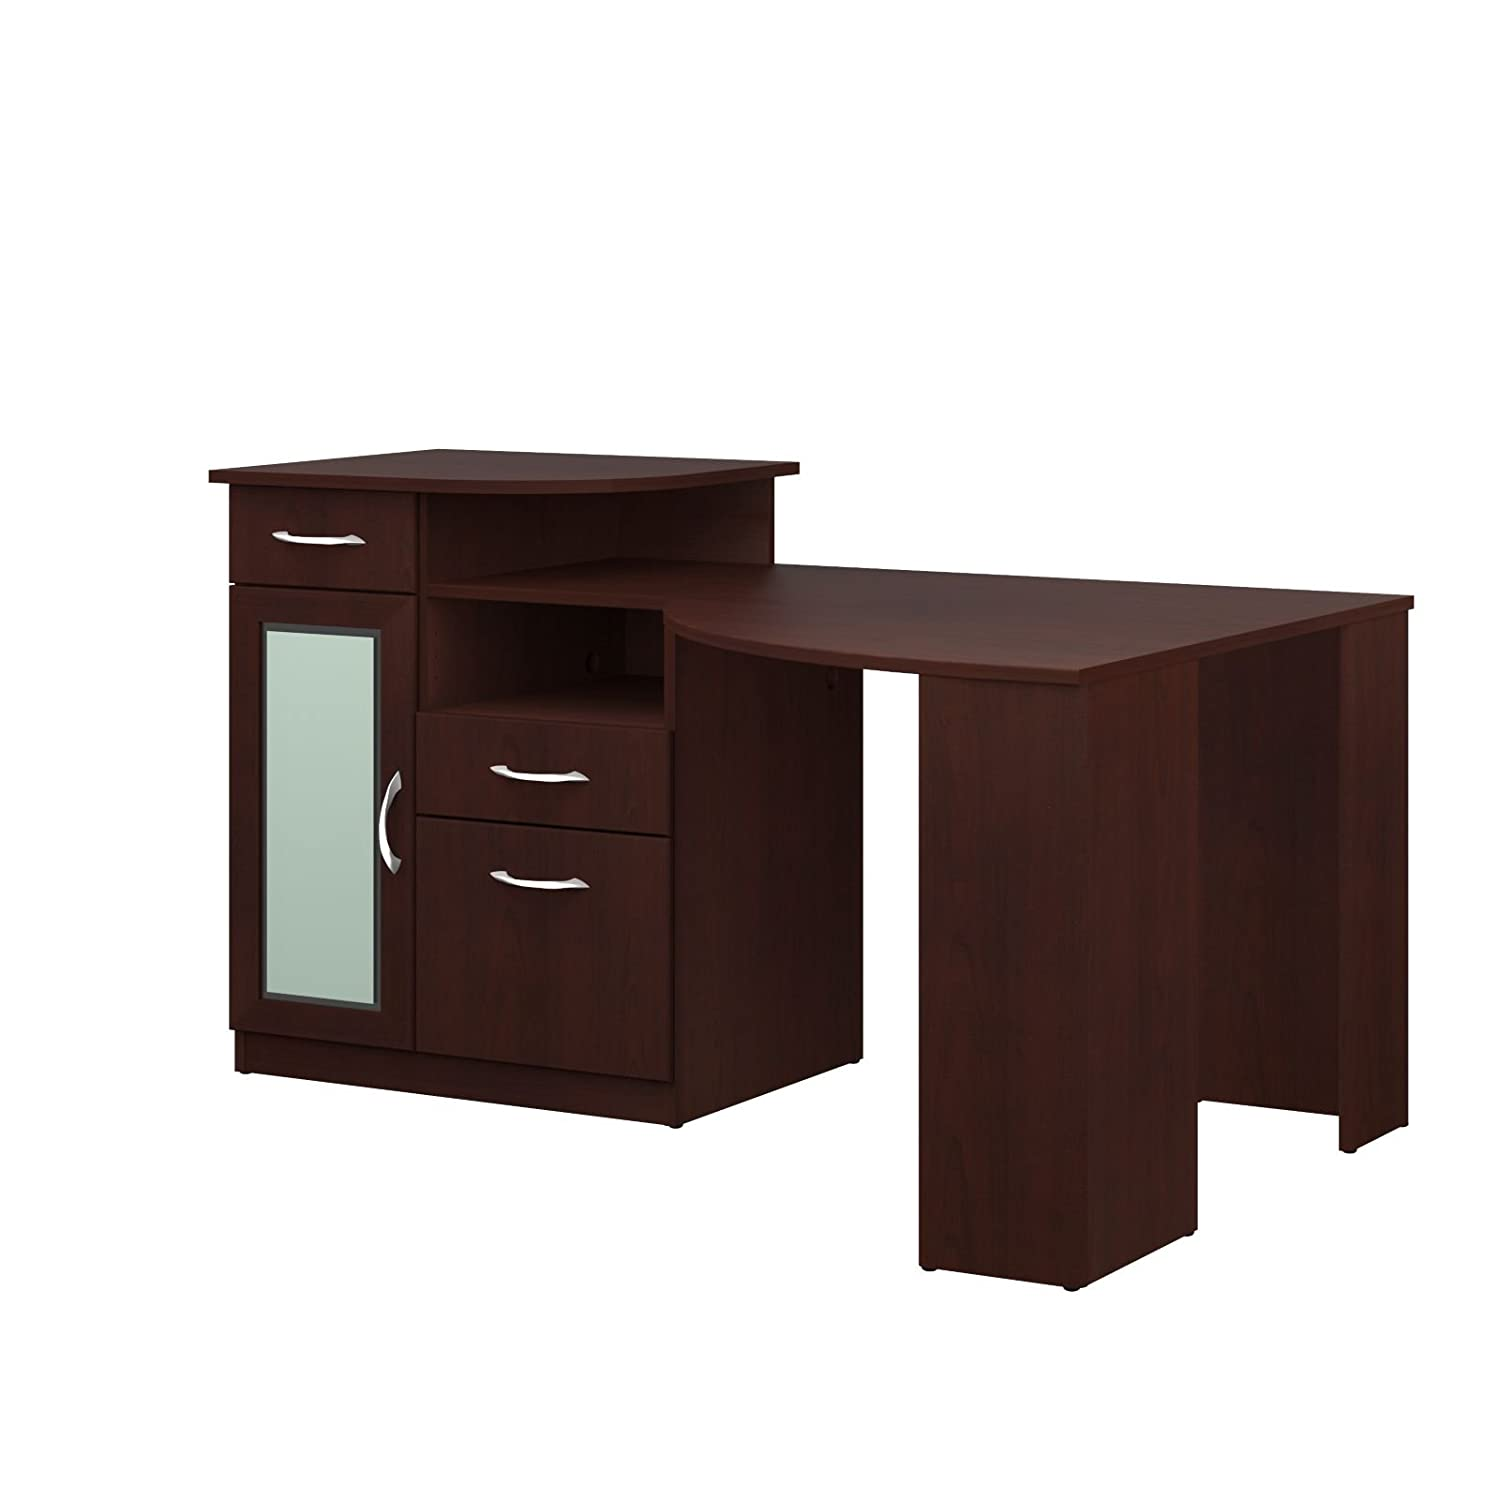 Amazon bush furniture vantage corner desk harvest cherry amazon bush furniture vantage corner desk harvest cherry kitchen dining watchthetrailerfo